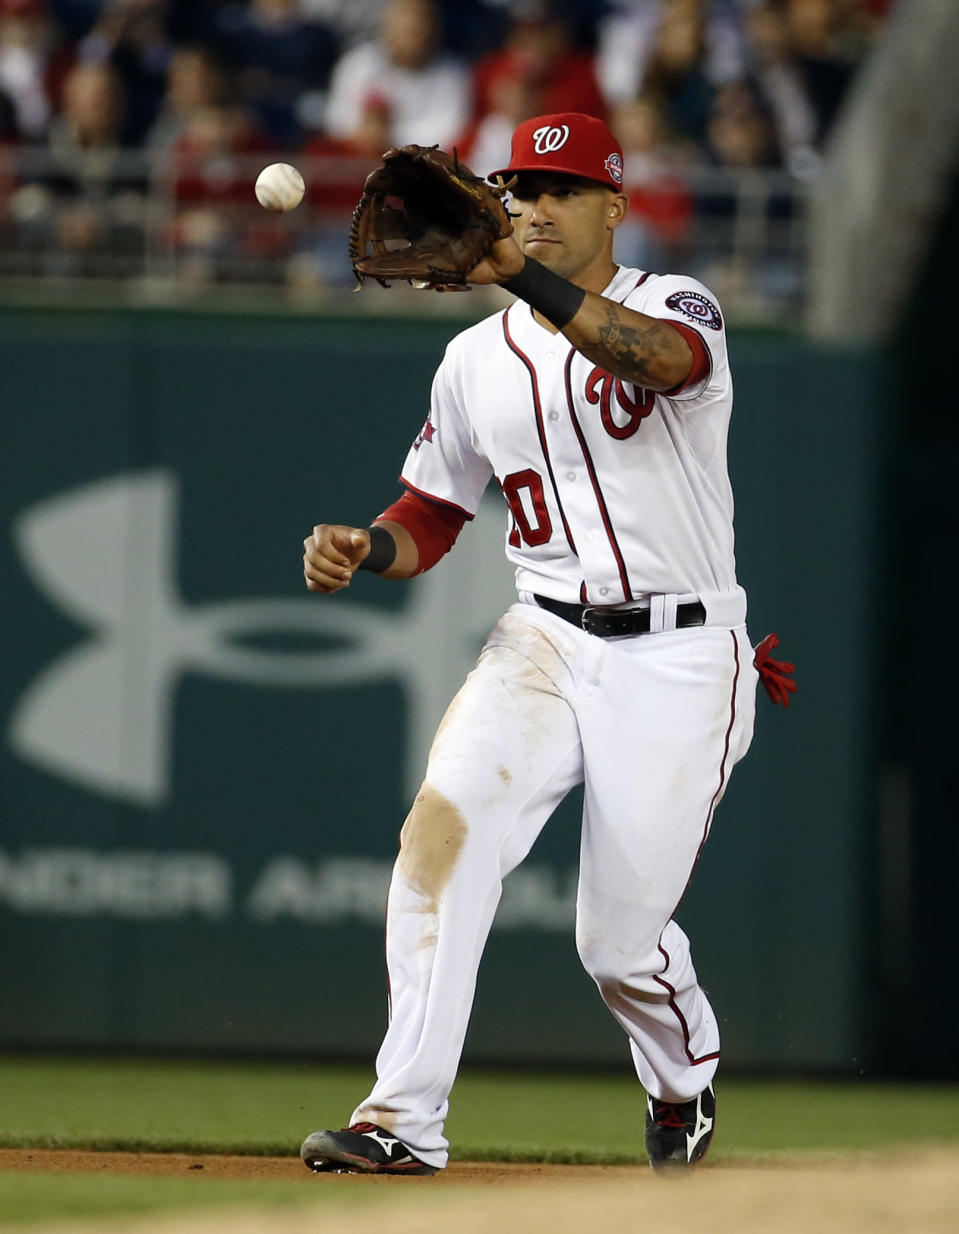 Washington Nationals shortstop Ian Desmond fields a ball hit by Toronto Blue Jays' Chris Colabello during the fifth inning of a baseball game at Nationals Park, Wednesday, June 3, 2015, in Washington. Colabello was out at first. (AP Photo/Alex Brandon)